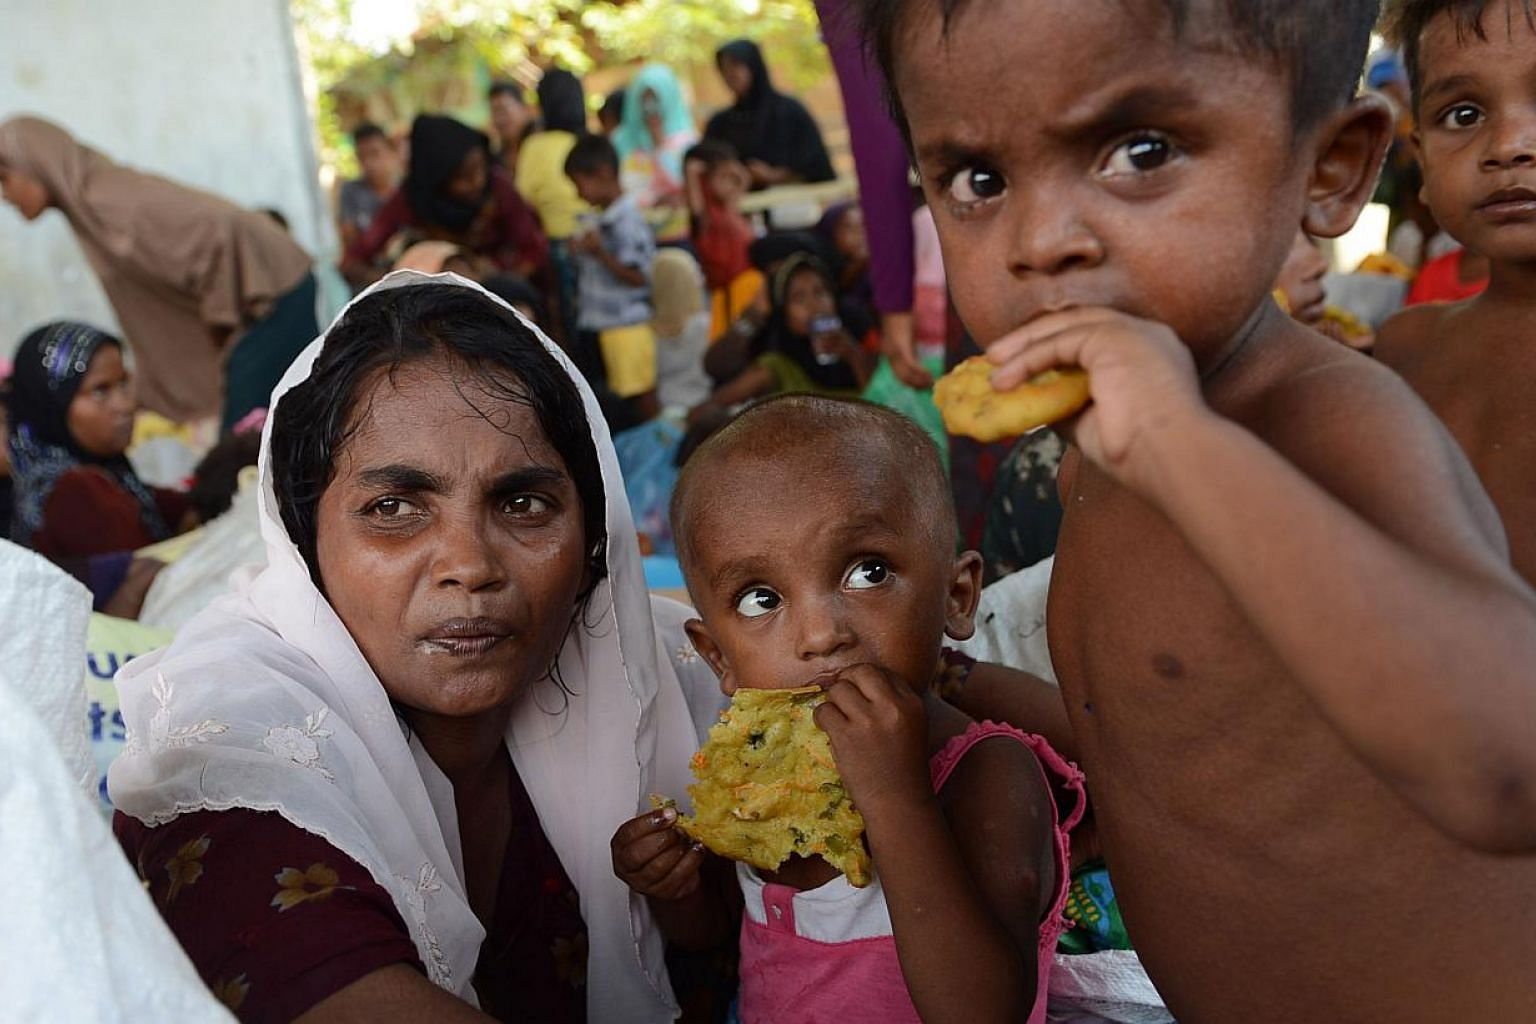 Rescued Rohingya women and children are provided with food by Indonesian residents in the compound of a mosque in Julok district, Aceh province, on May 20, 2015, after they were rescued by Indonesian fishermen off the waters of the eastern coast of A